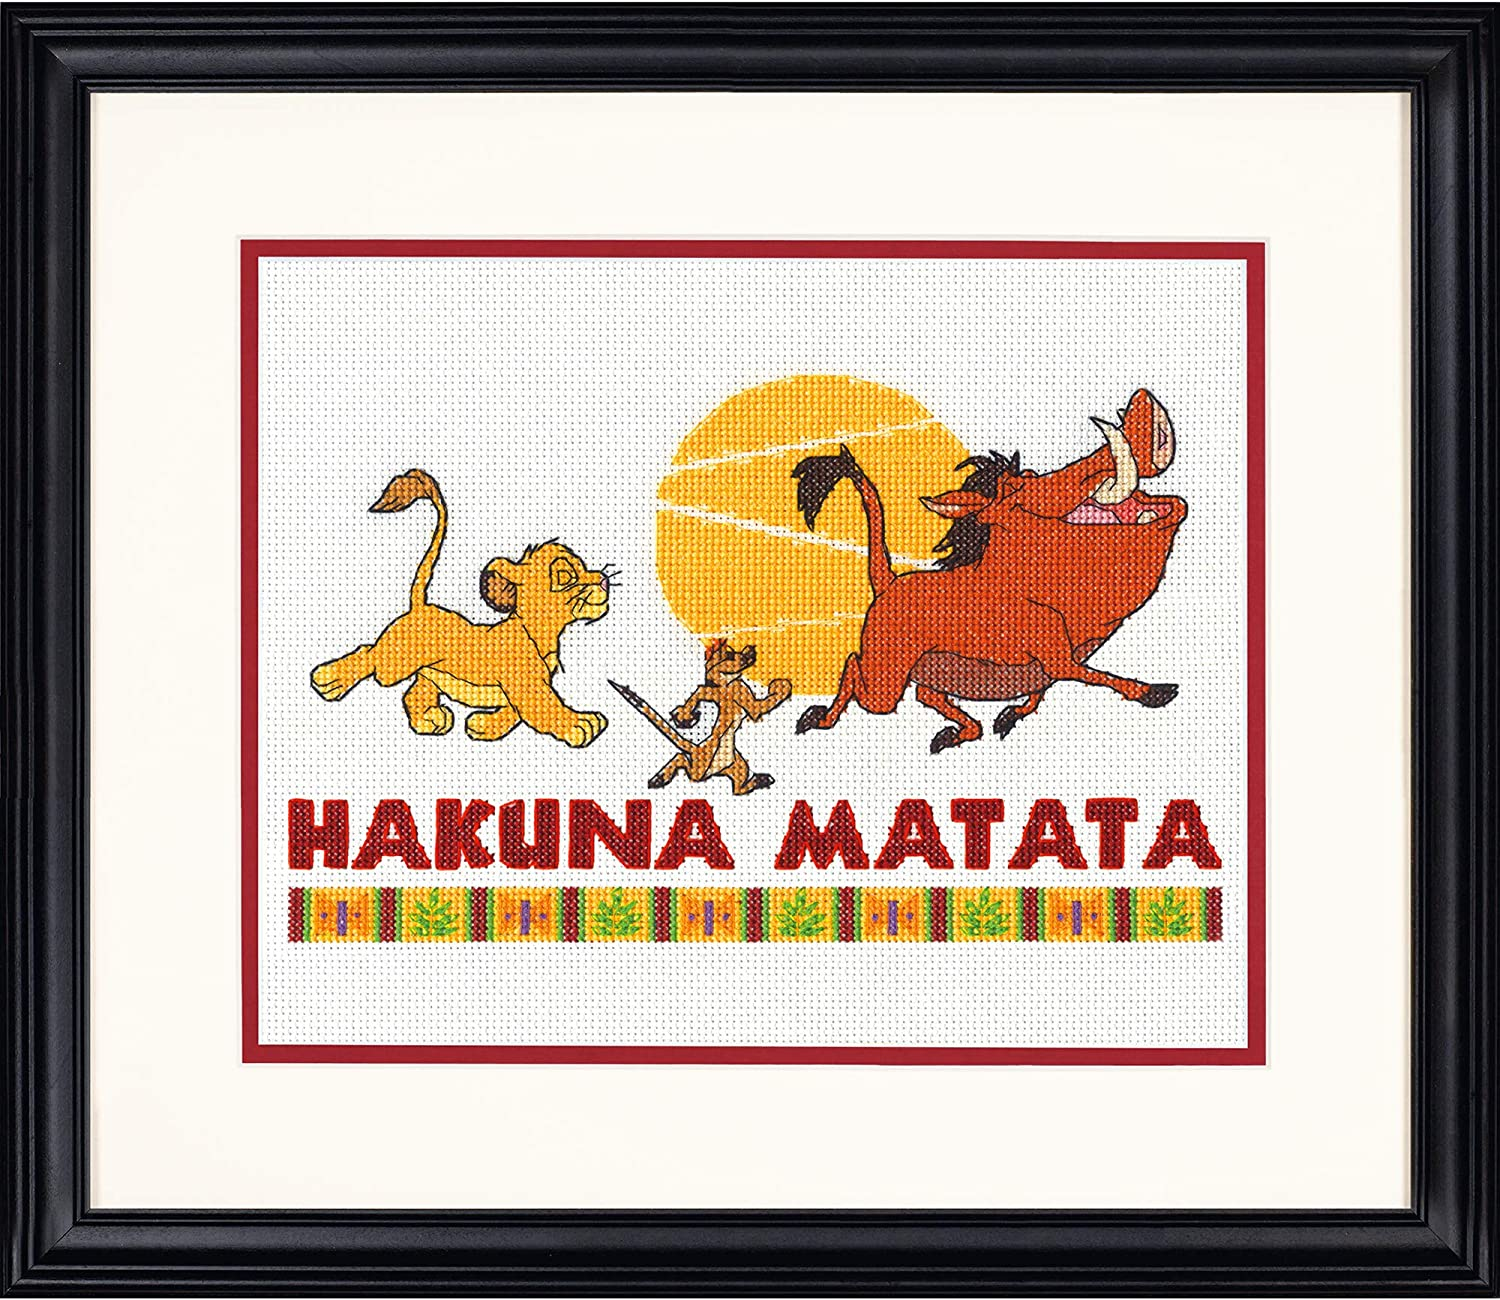 Dimensions Disneys The Lion King Hakuna Matata Counted Cross Stitch Kit for Beginners 14 Count White Aida Cloth 10 x 8